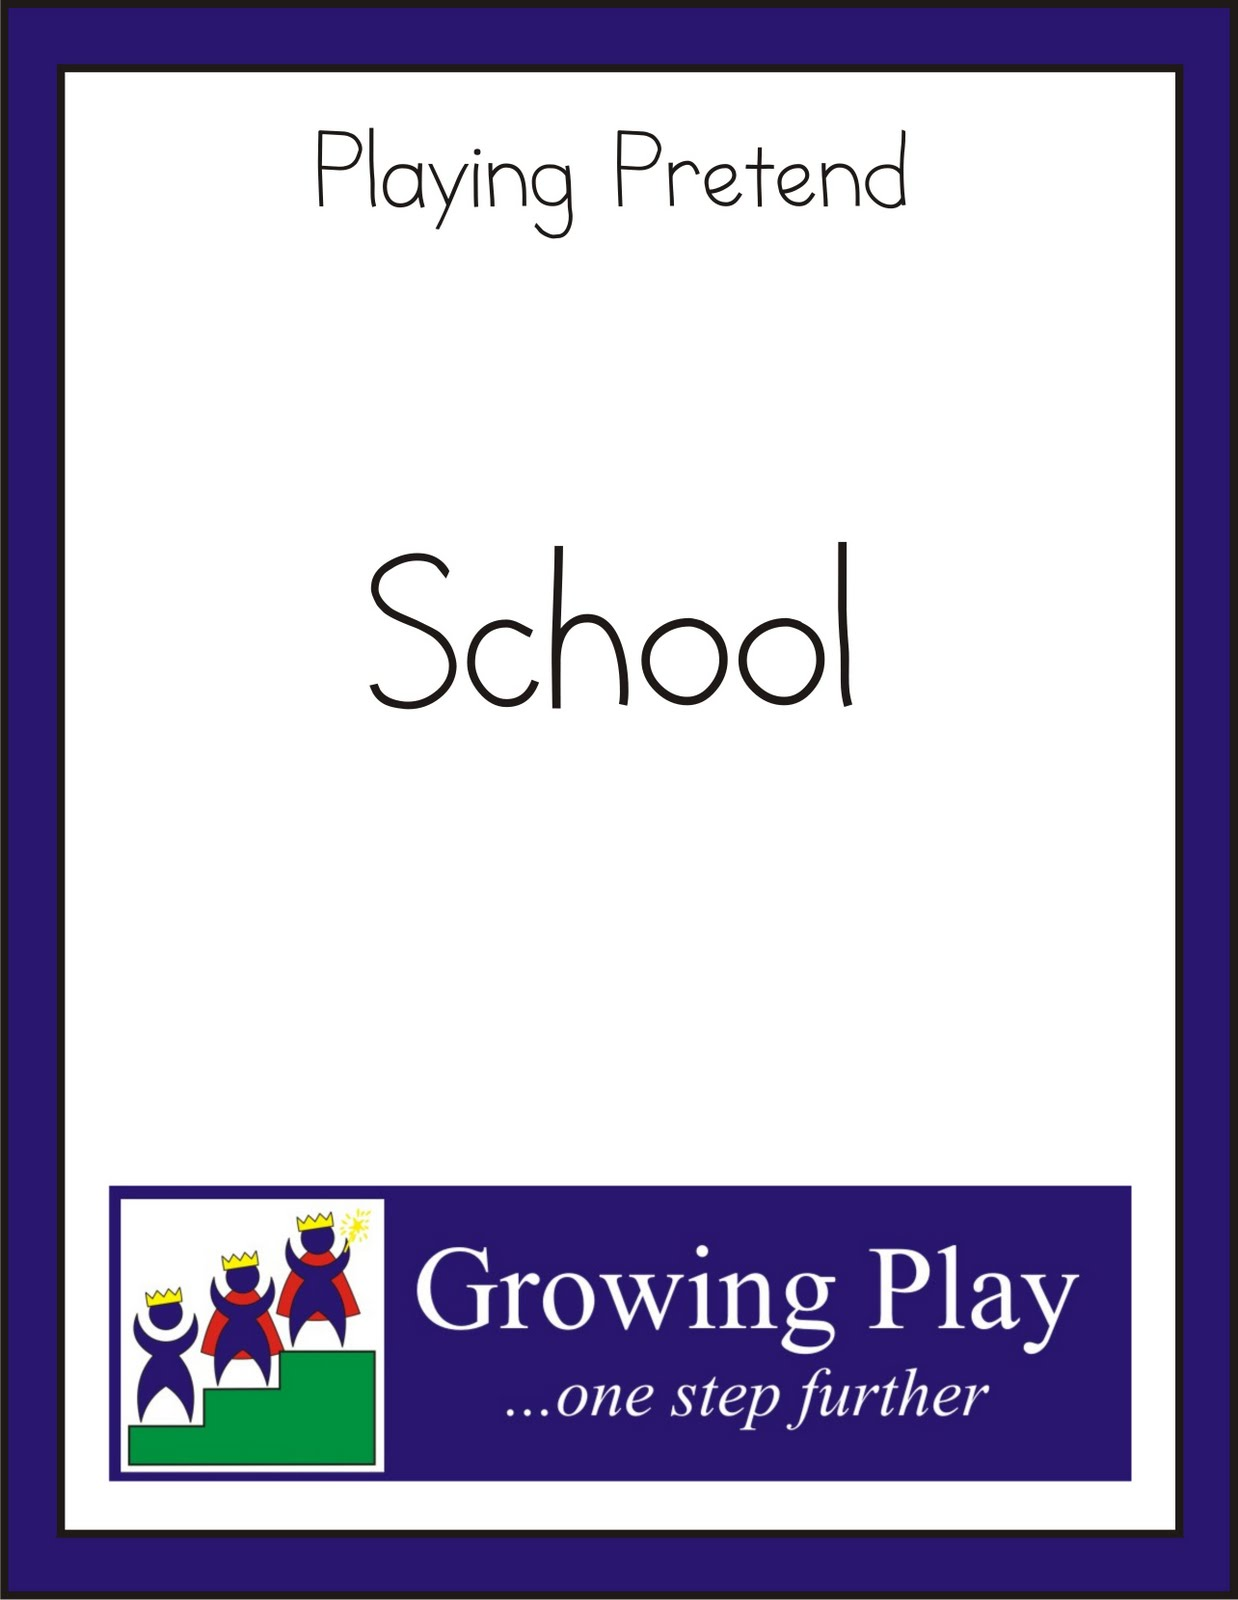 Growing Play: Ideas for Playing Pretend School